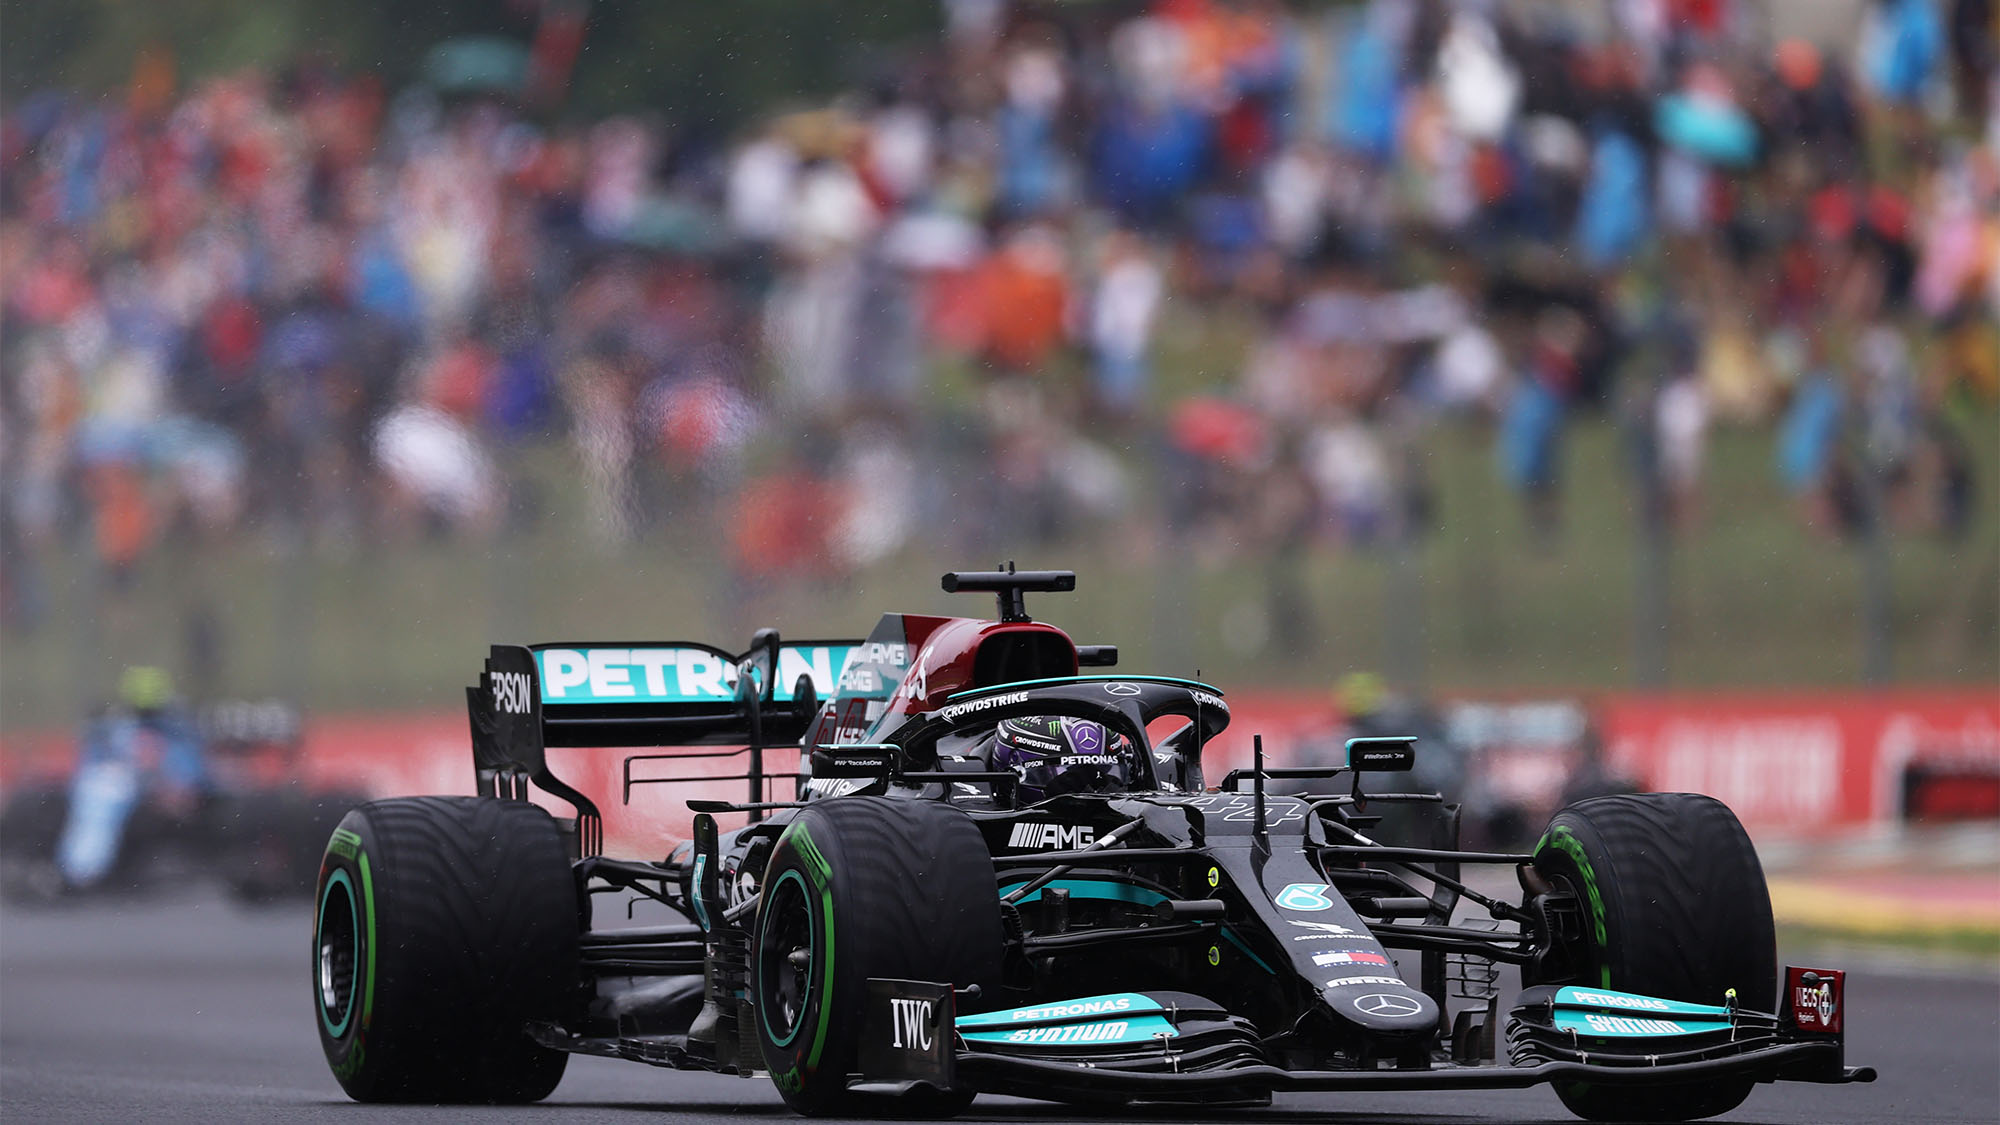 BUDAPEST, HUNGARY - AUGUST 01: Lewis Hamilton of Great Britain driving the (44) Mercedes AMG Petronas F1 Team Mercedes W12 during the F1 Grand Prix of Hungary at Hungaroring on August 01, 2021 in Budapest, Hungary. (Photo by Lars Baron/Getty Images)